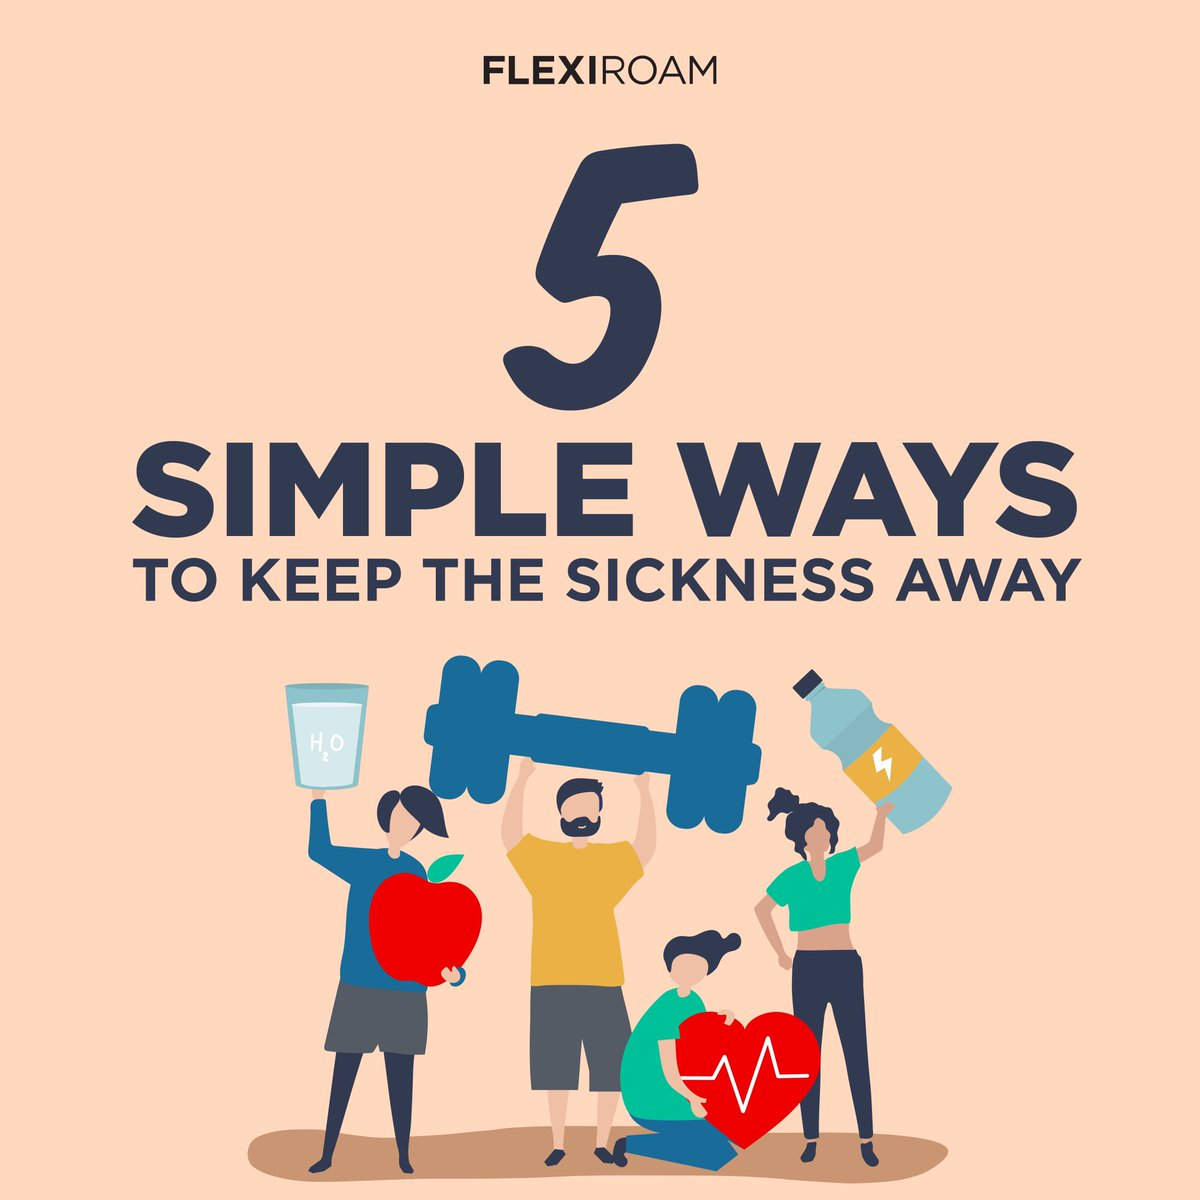 Say BYE 🖐to sickness!   With these 5 simple ways, always remind yourself and your loved ones to #StayHealthy together! https://t.co/BFCAjmKHLA